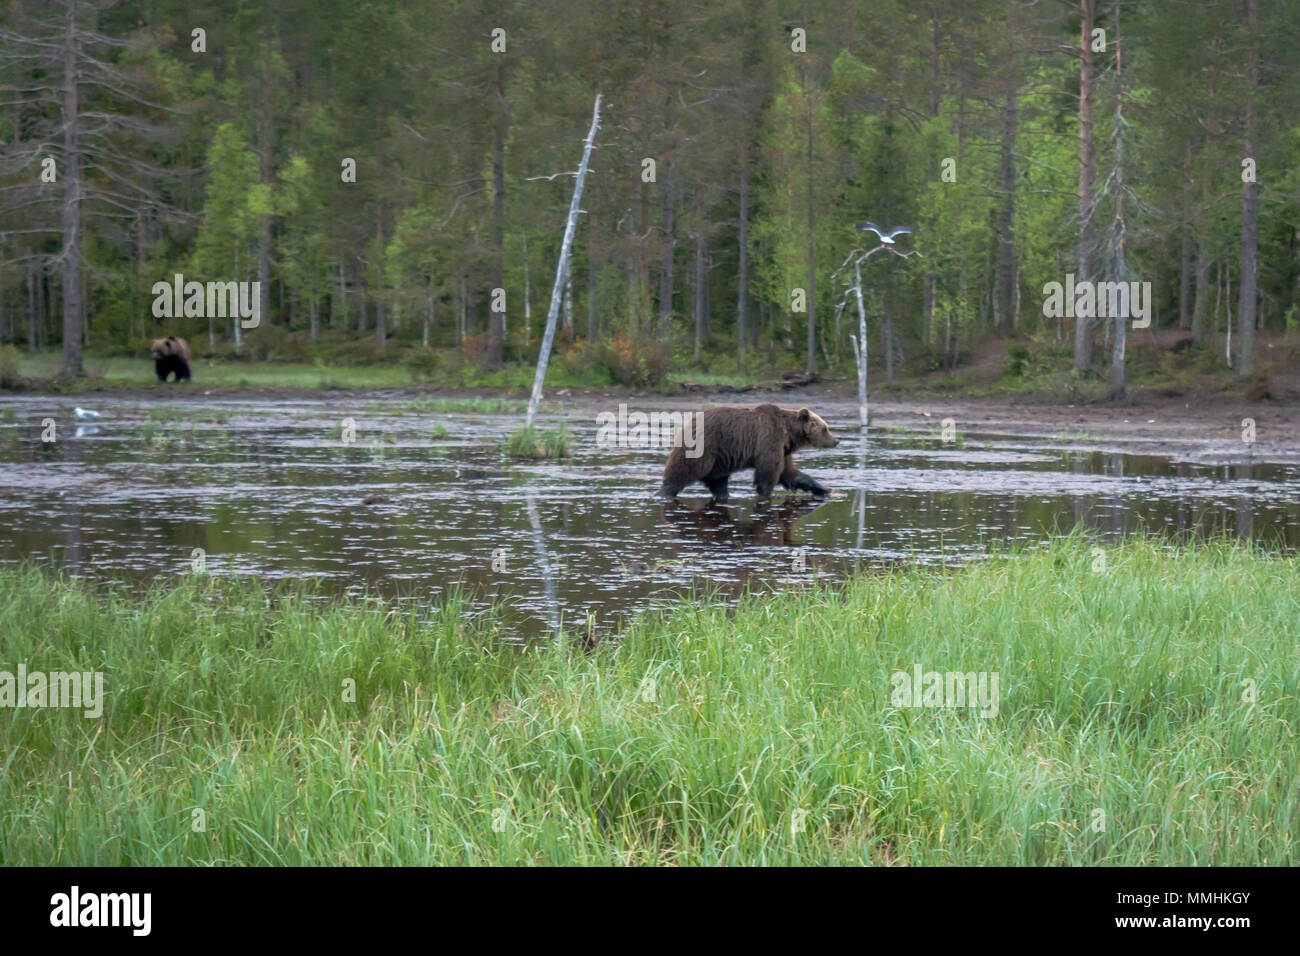 Pond with Brown Bears, in Kuusamo region, Finland - Stock Image